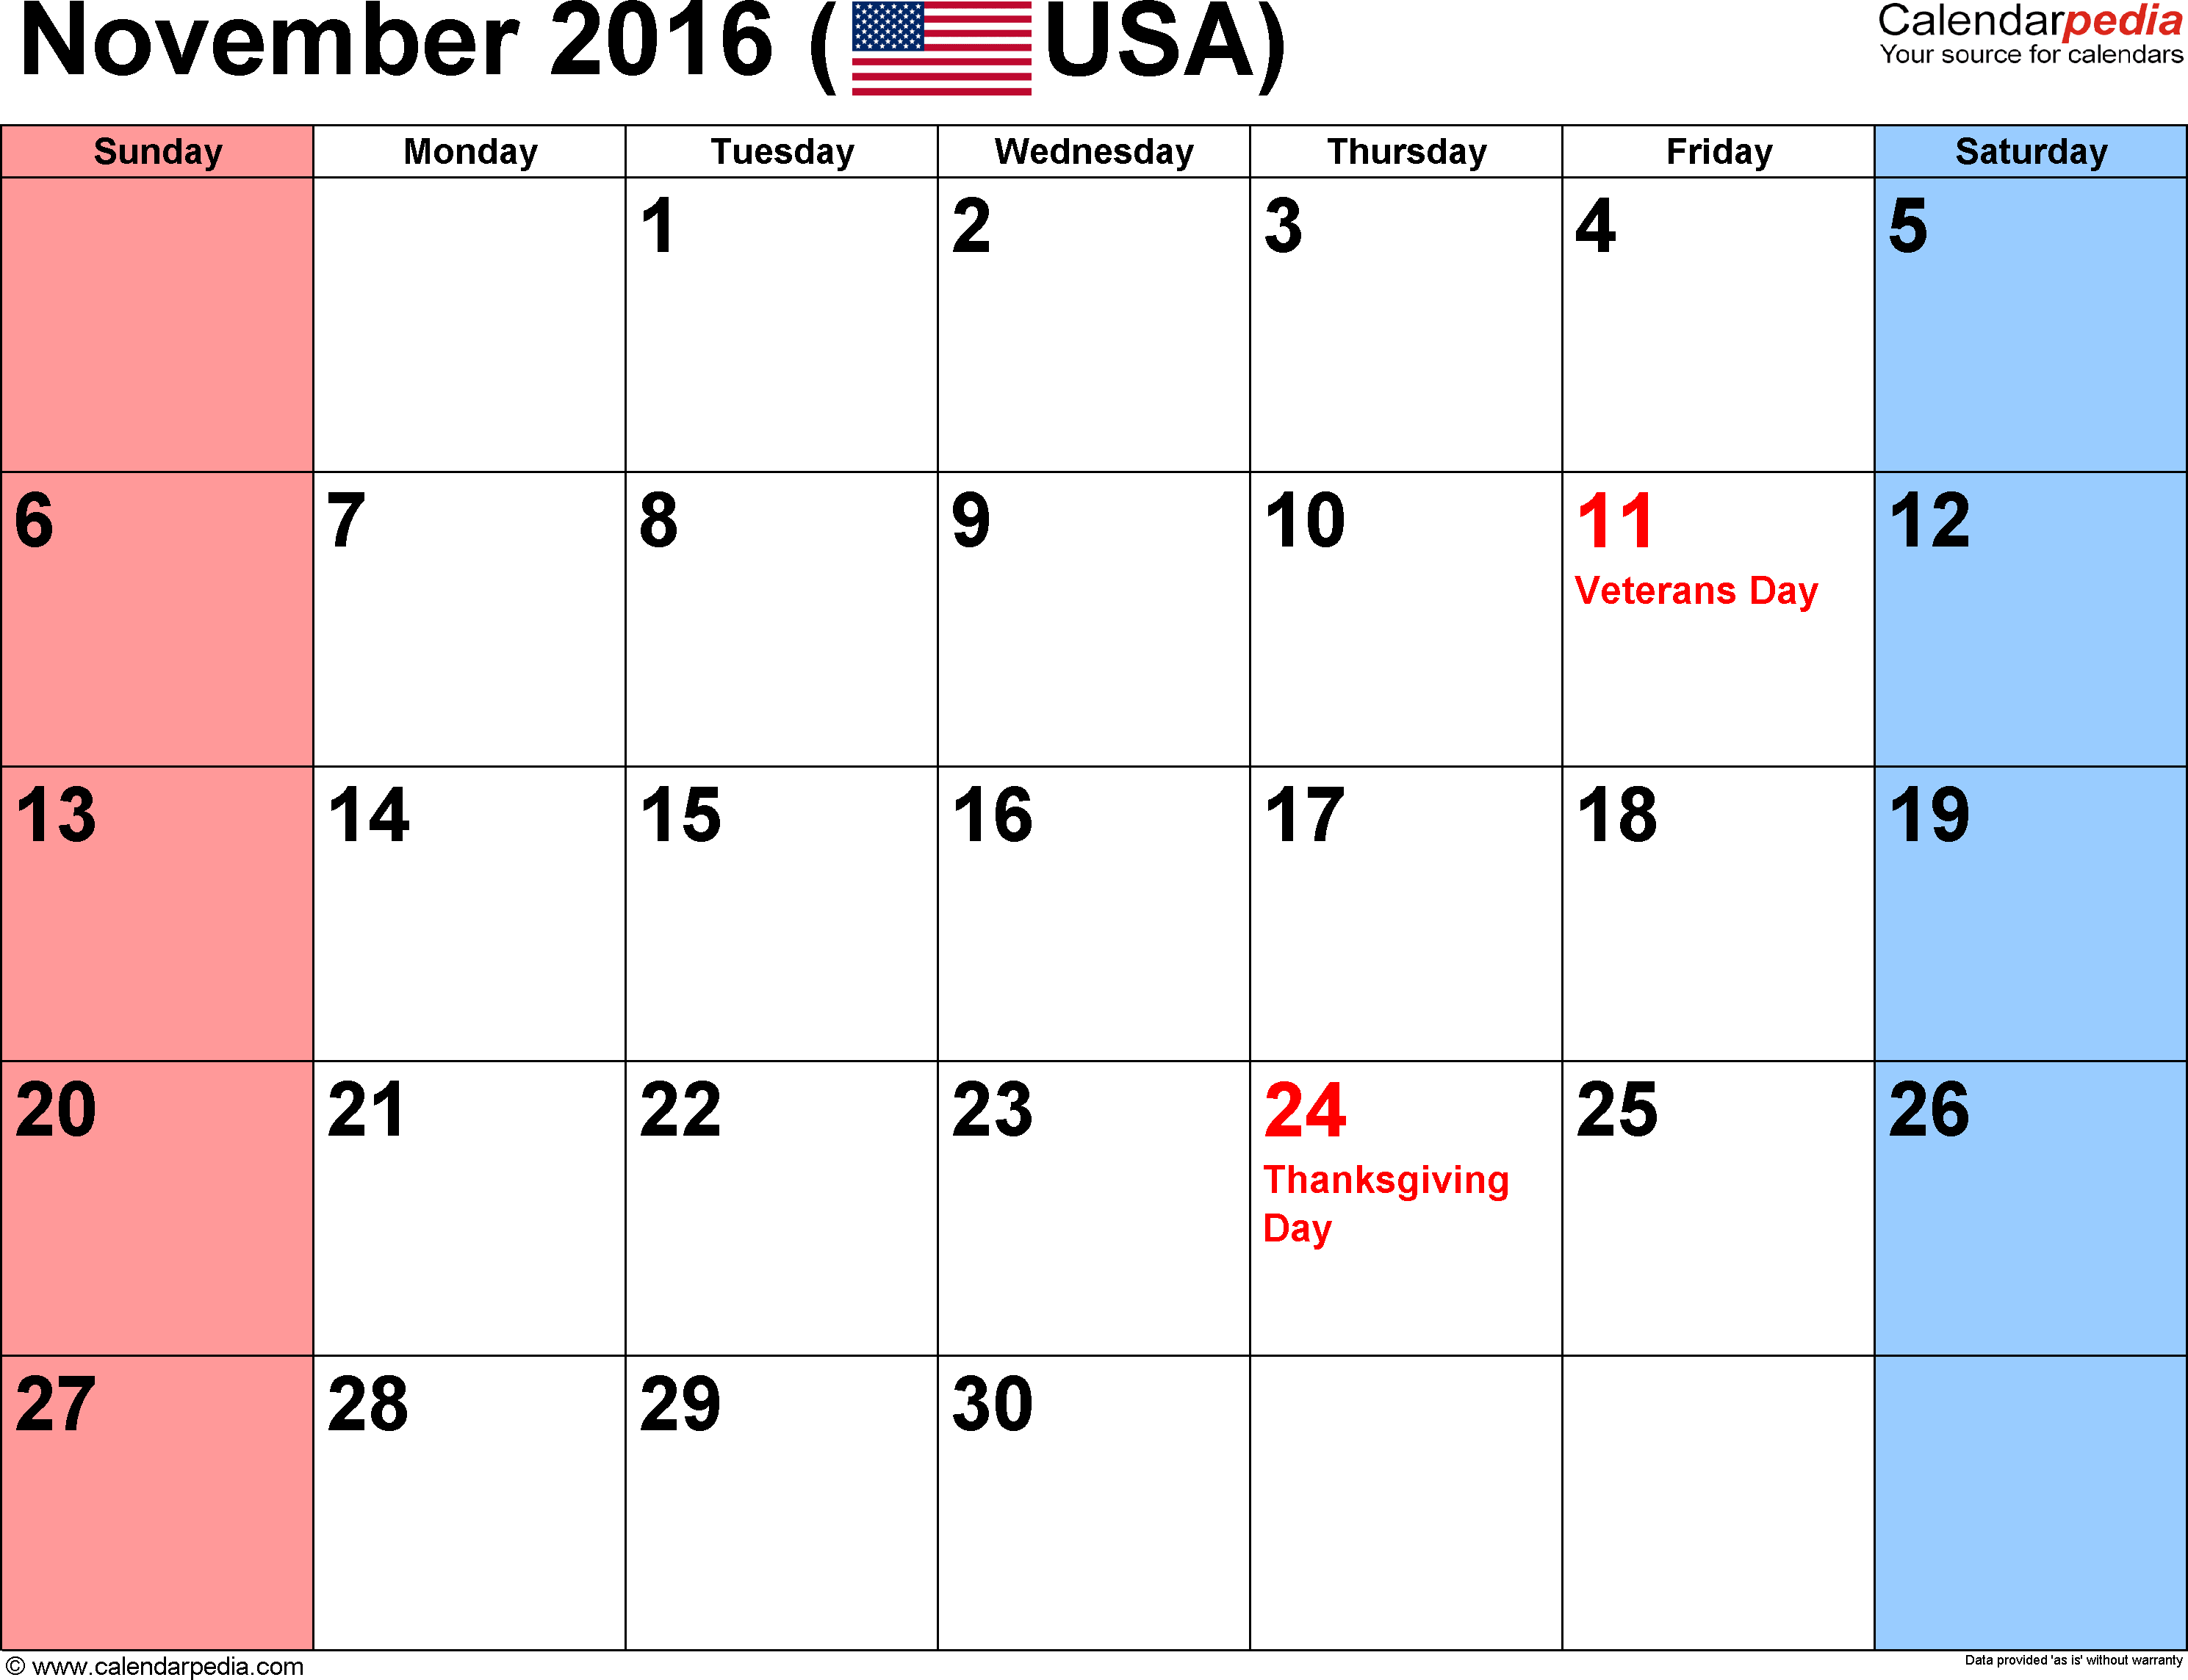 November 2016 Calendar With Holidays